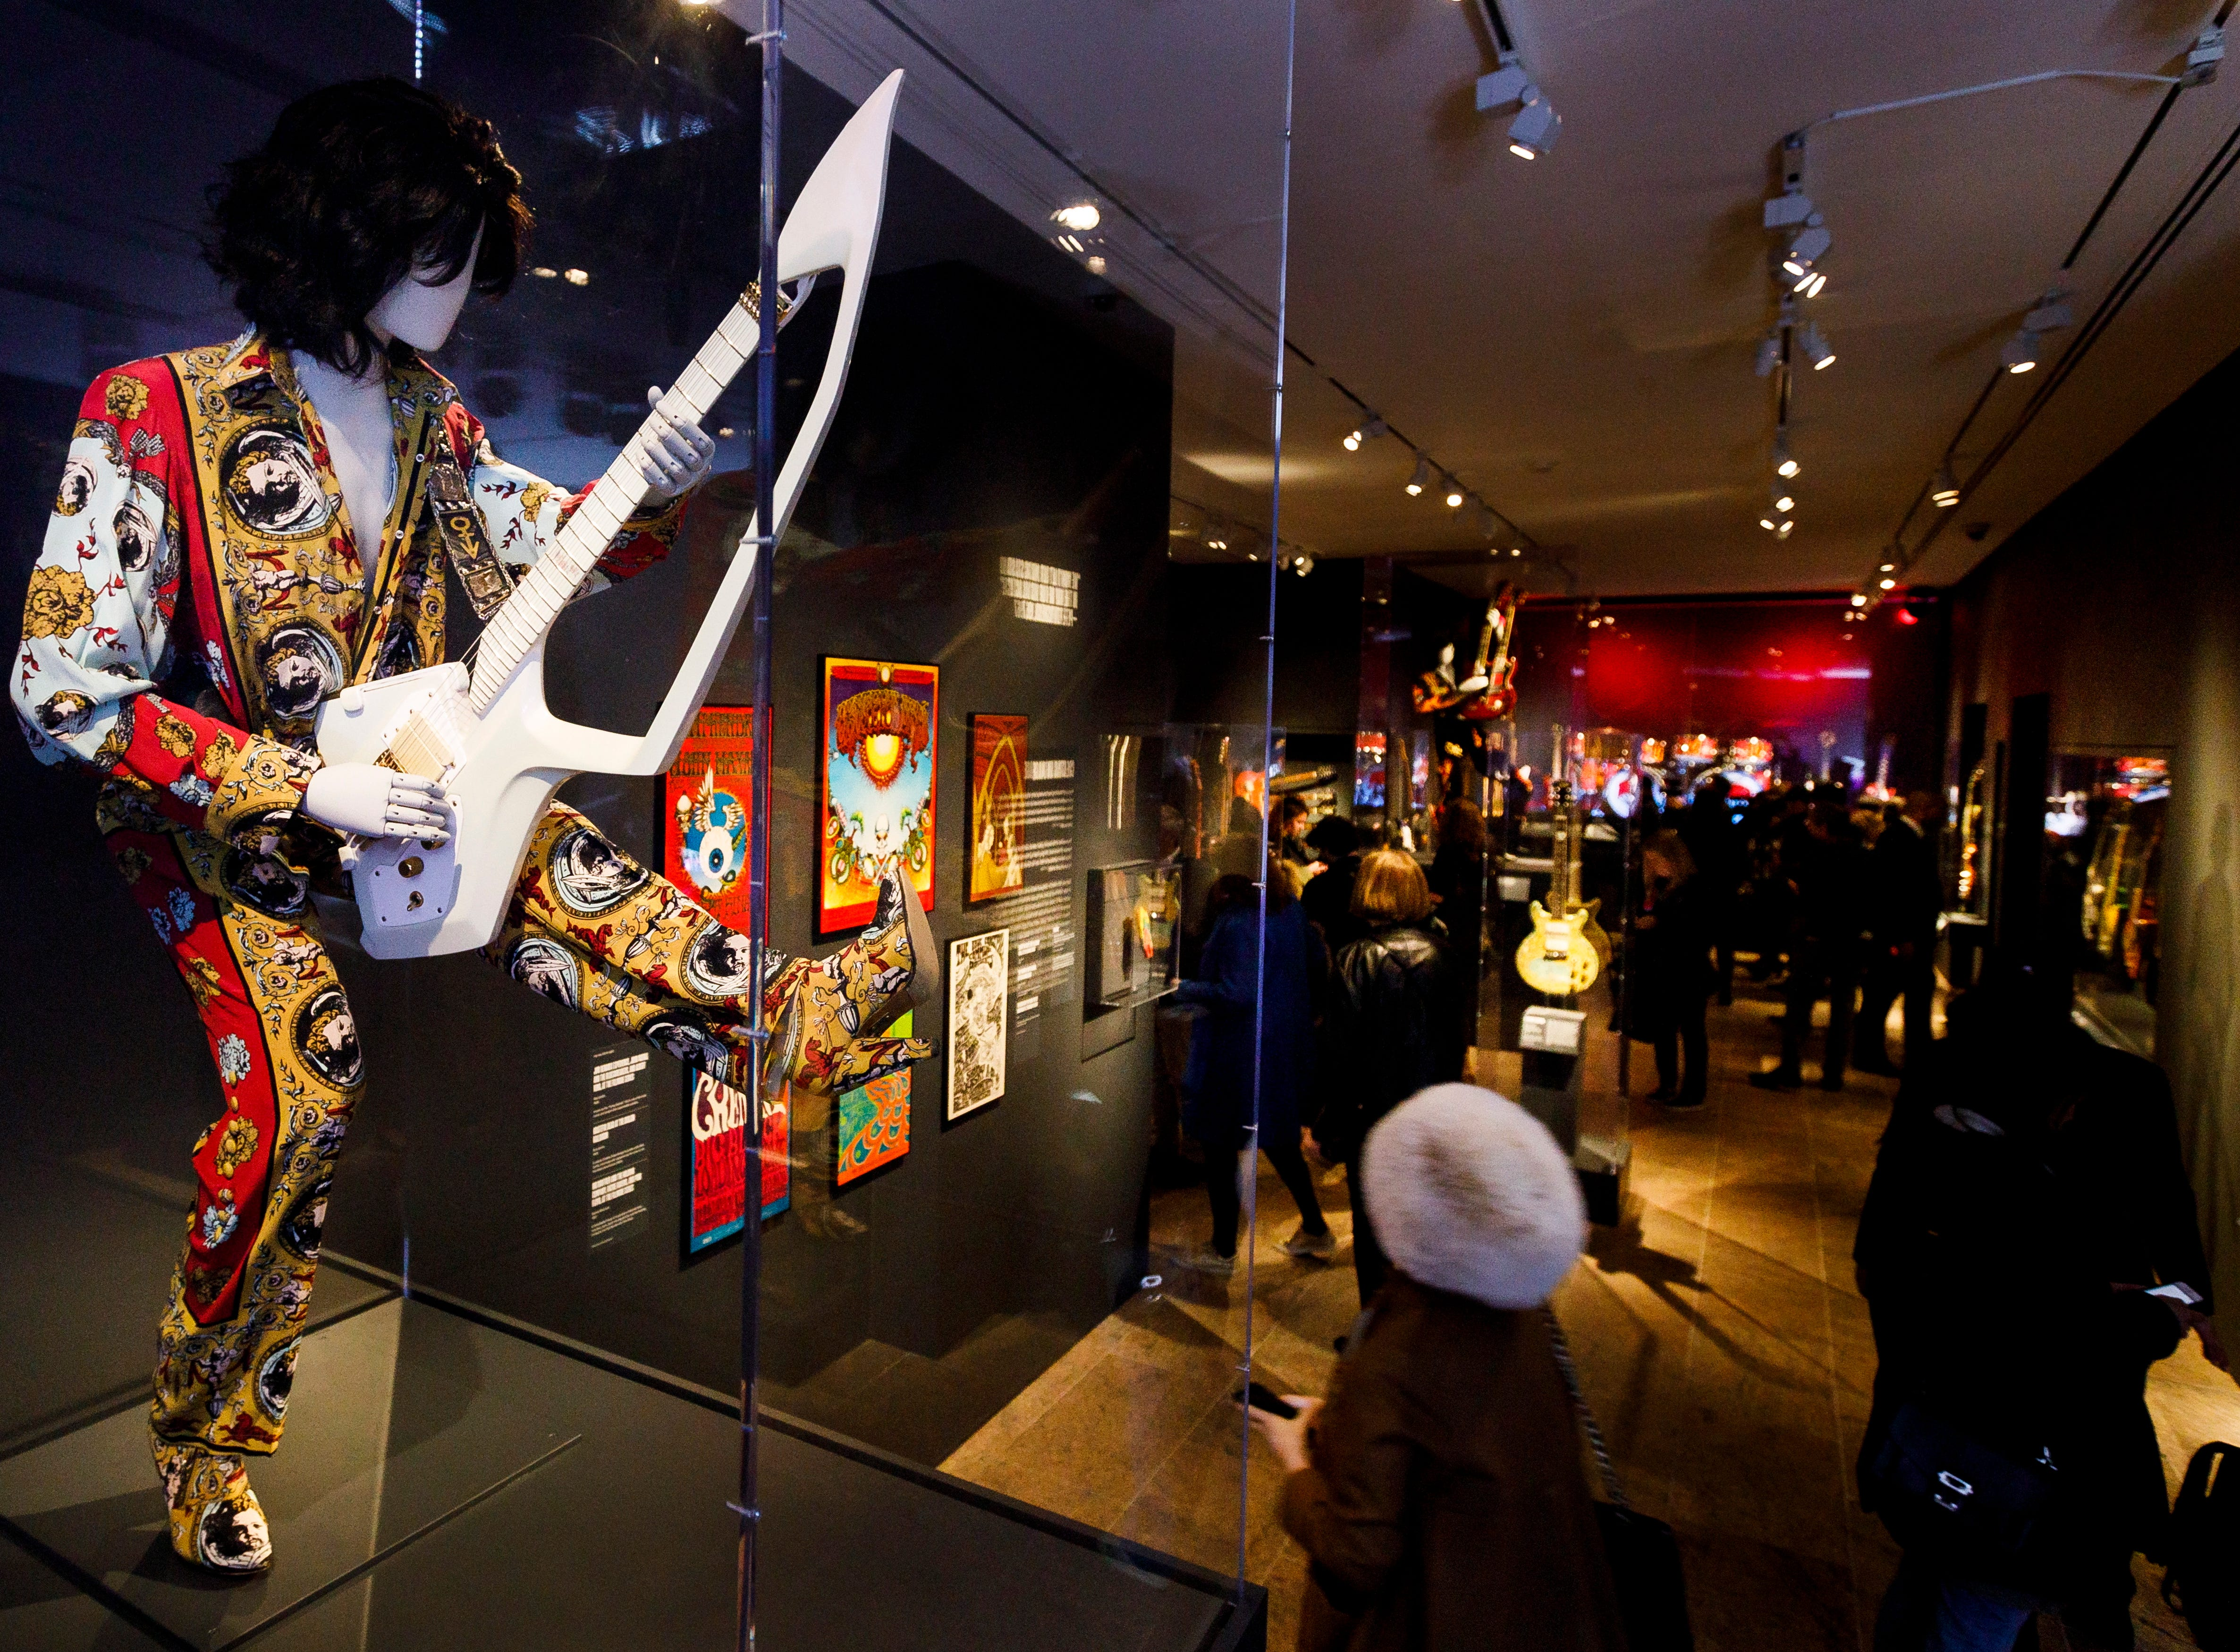 """A guitar and outfit owned by Prince is seen during a preview of the new exhibit """"Play It Loud: Instruments of Rock & Roll"""". The exhibit features over 130 musical instruments, including many electric guitars, from iconic rock and roll musicians dating from 1939 to 2017 including The Beatles, Chuck Berry, Jimmy Page, Elvis Presley, and Jimi Hendrix."""